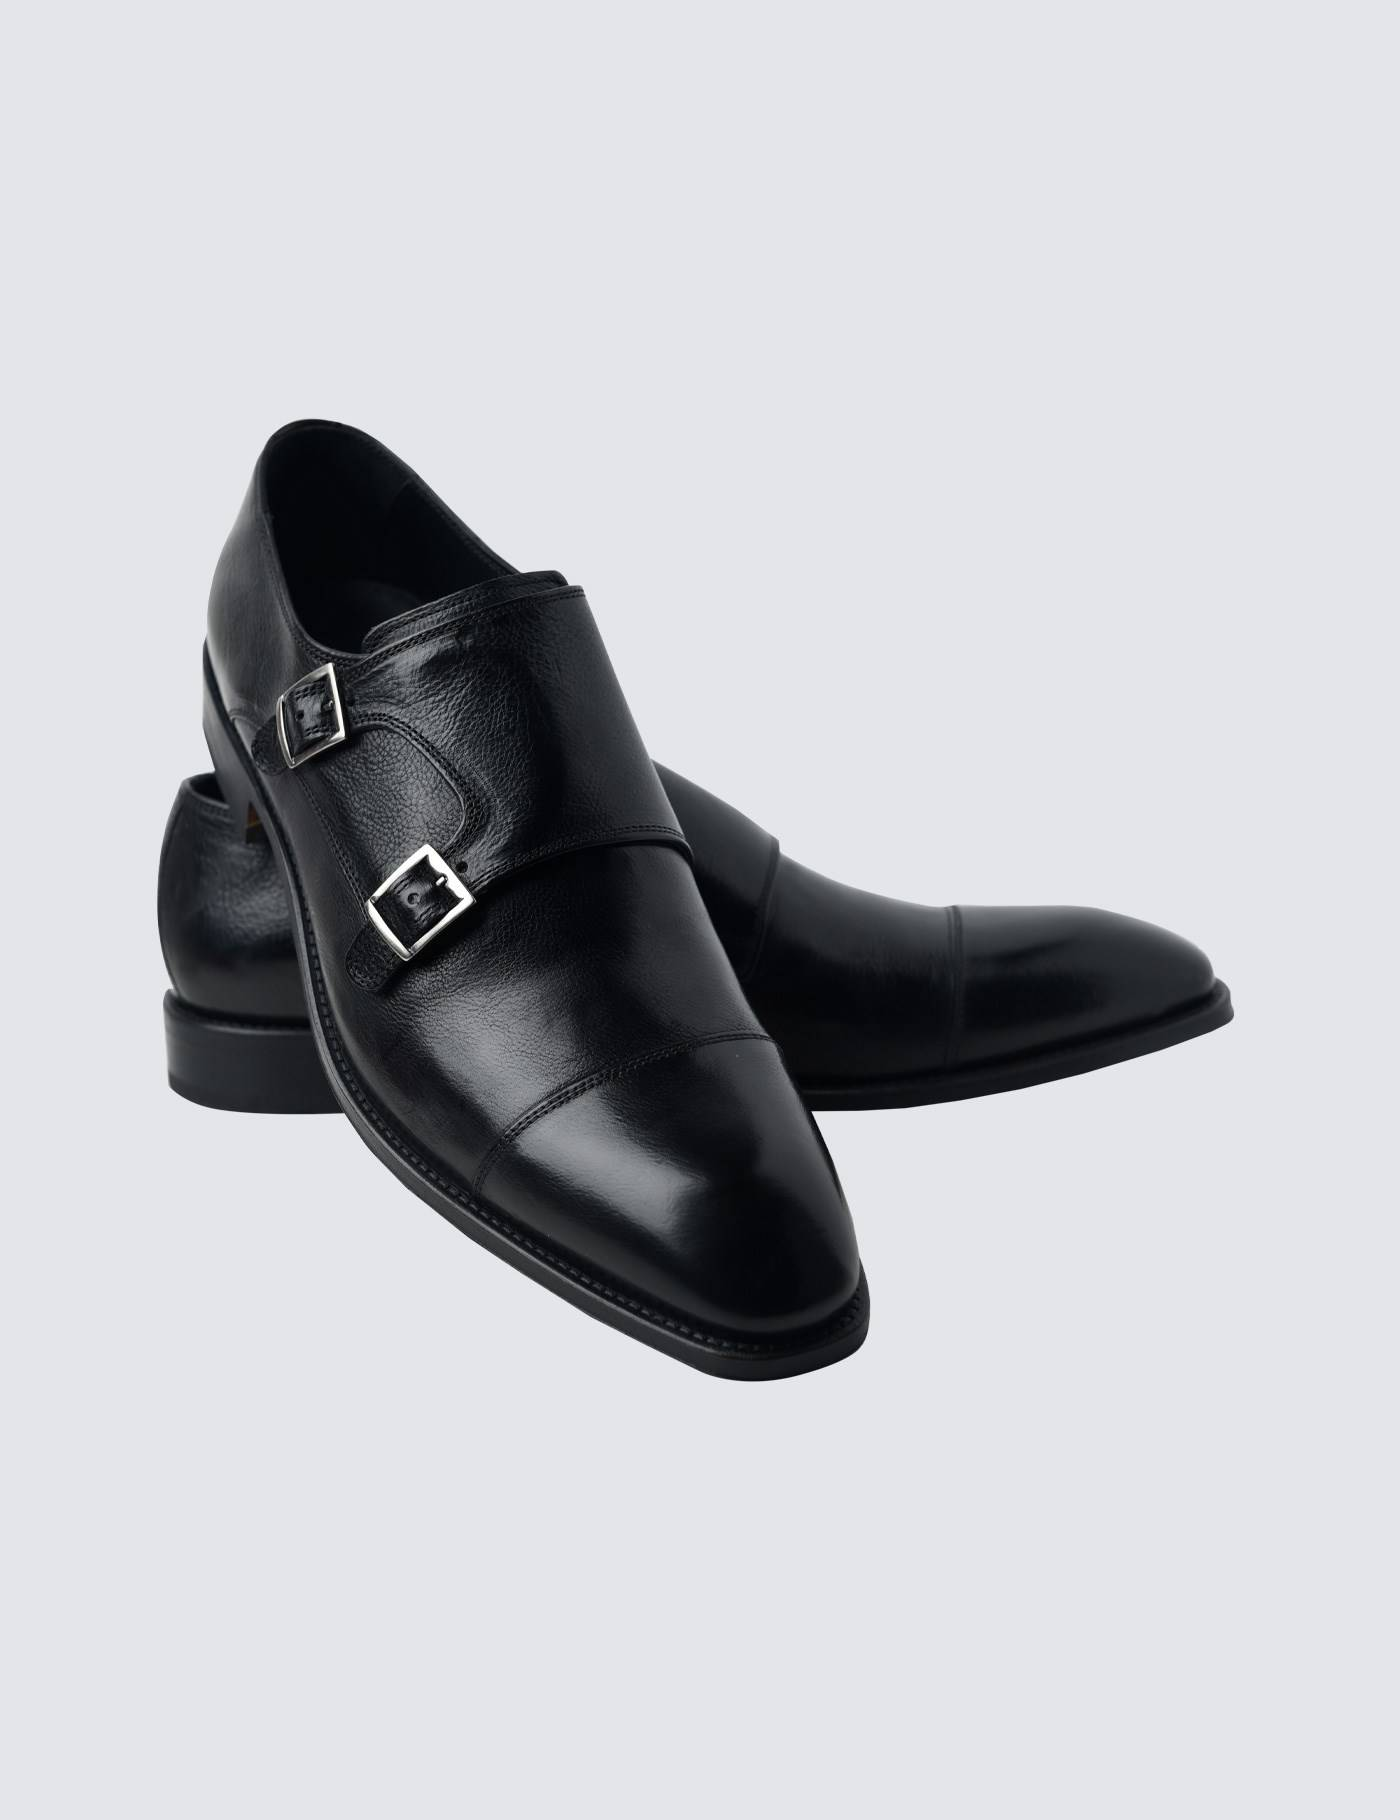 Hawes & Curtis Men's Leather Monk Shoes in Black Size 11